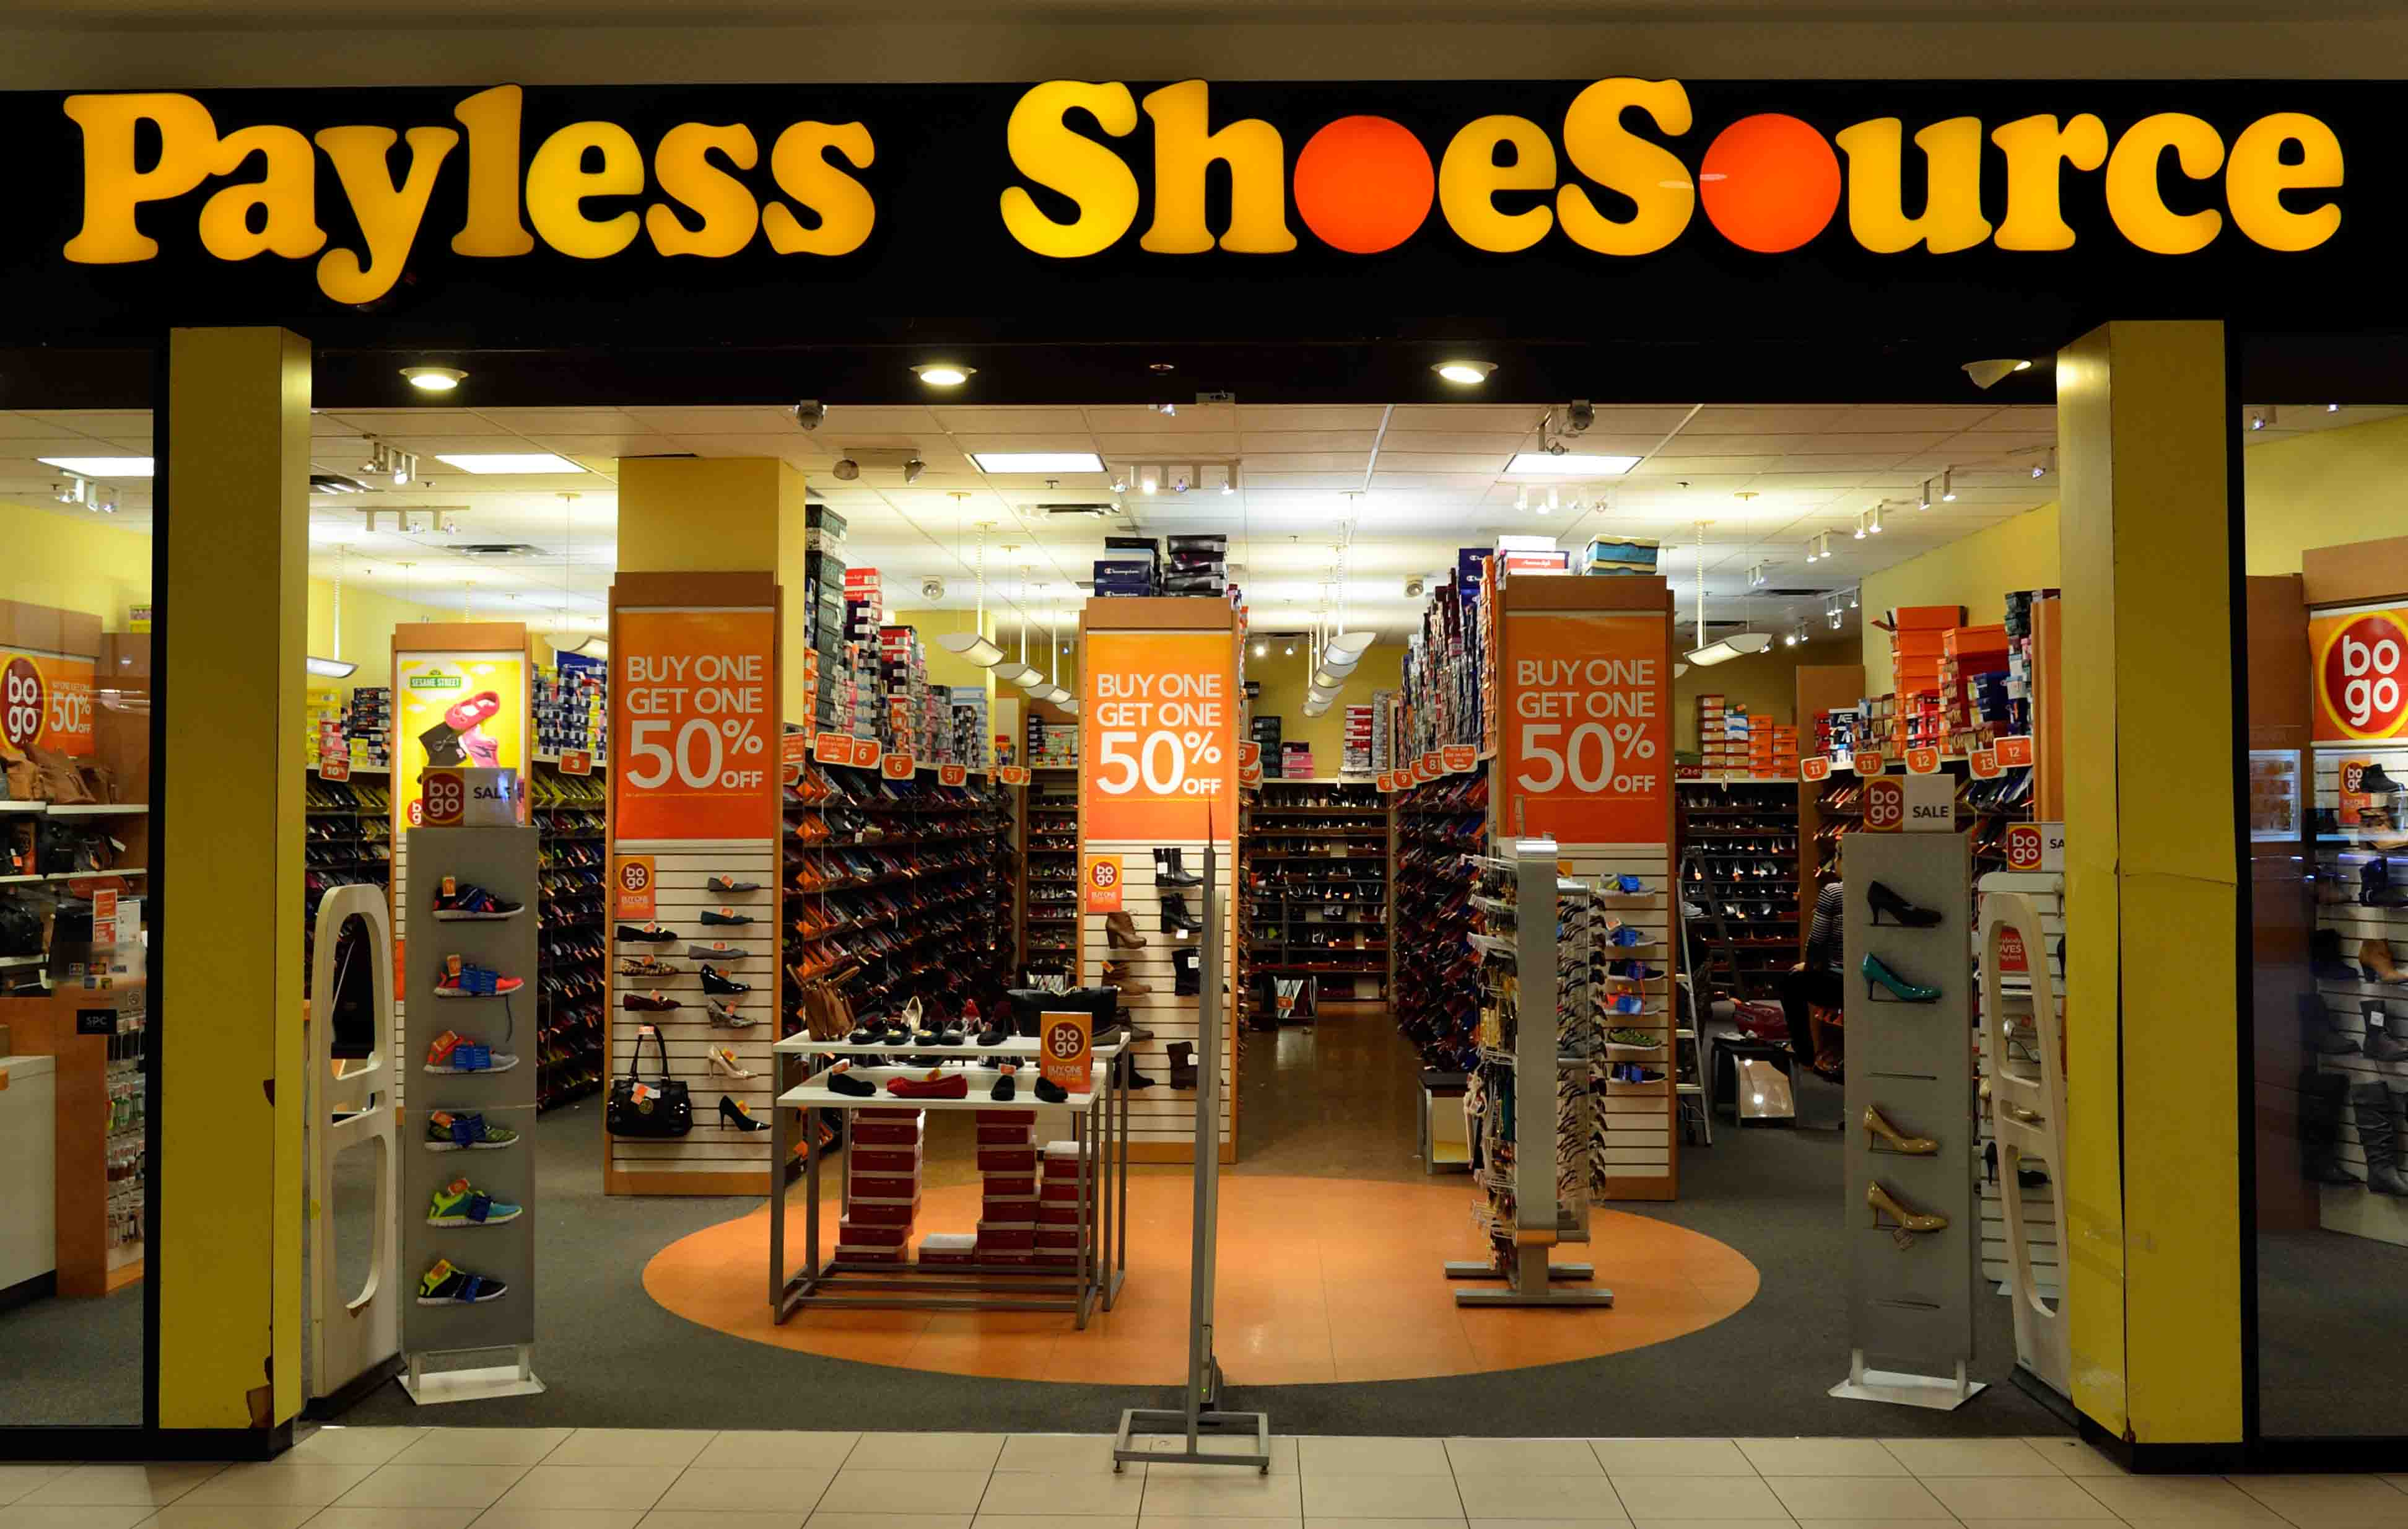 Payless Shoes is Going Out of Business and Closing All 2,300 Stores!